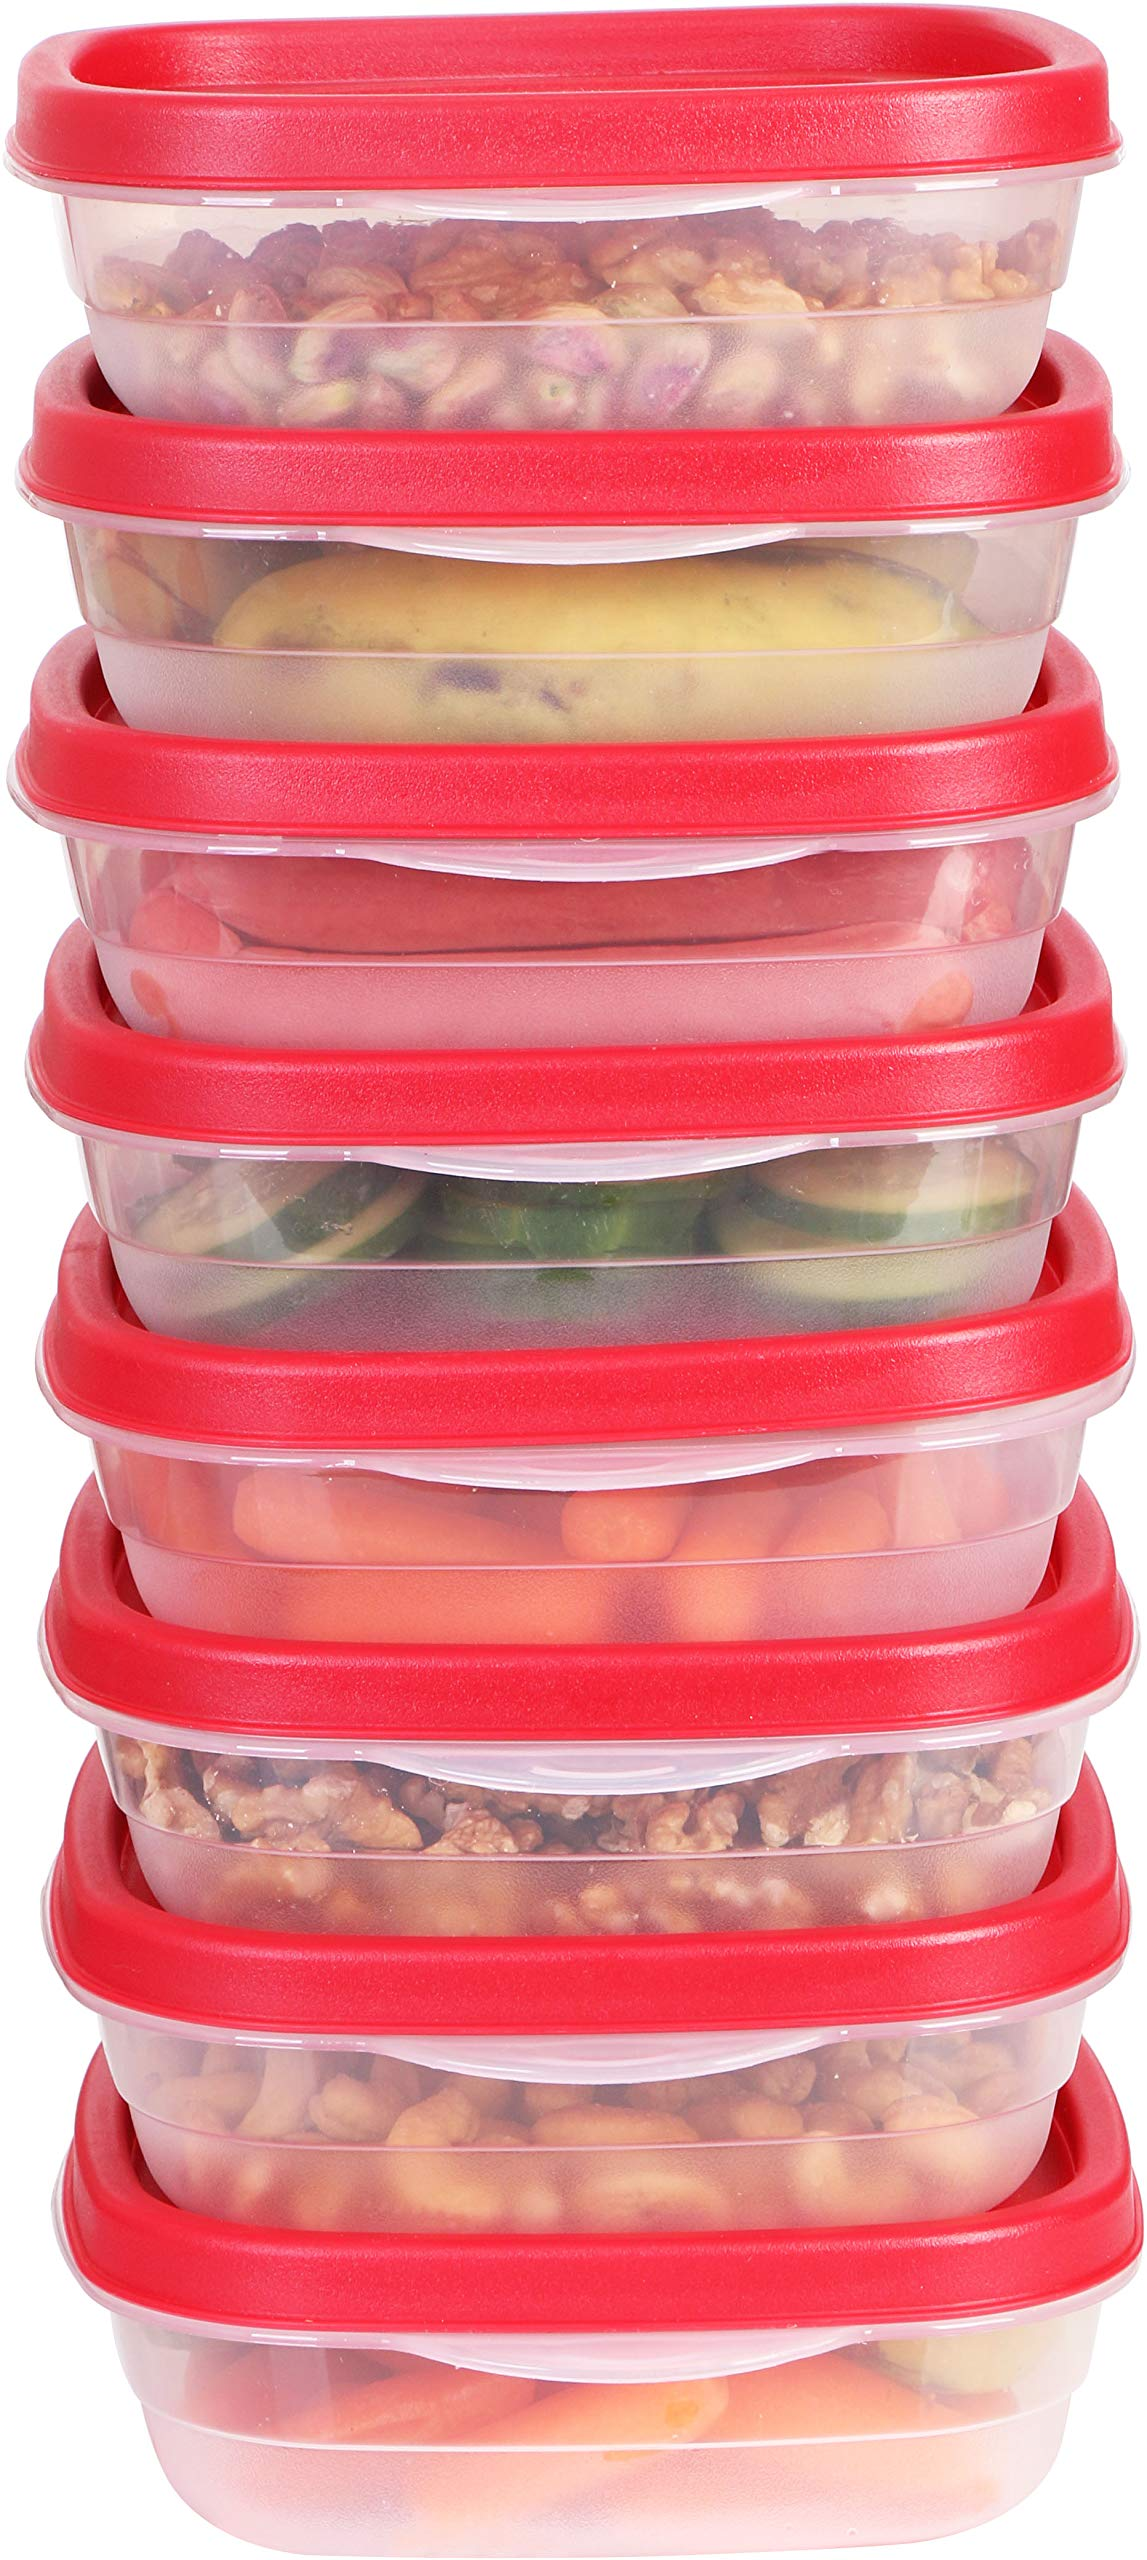 Utopia Kitchen Plastic Food Storage Containers with Lids [40 Pack] by Utopia Kitchen (Image #3)